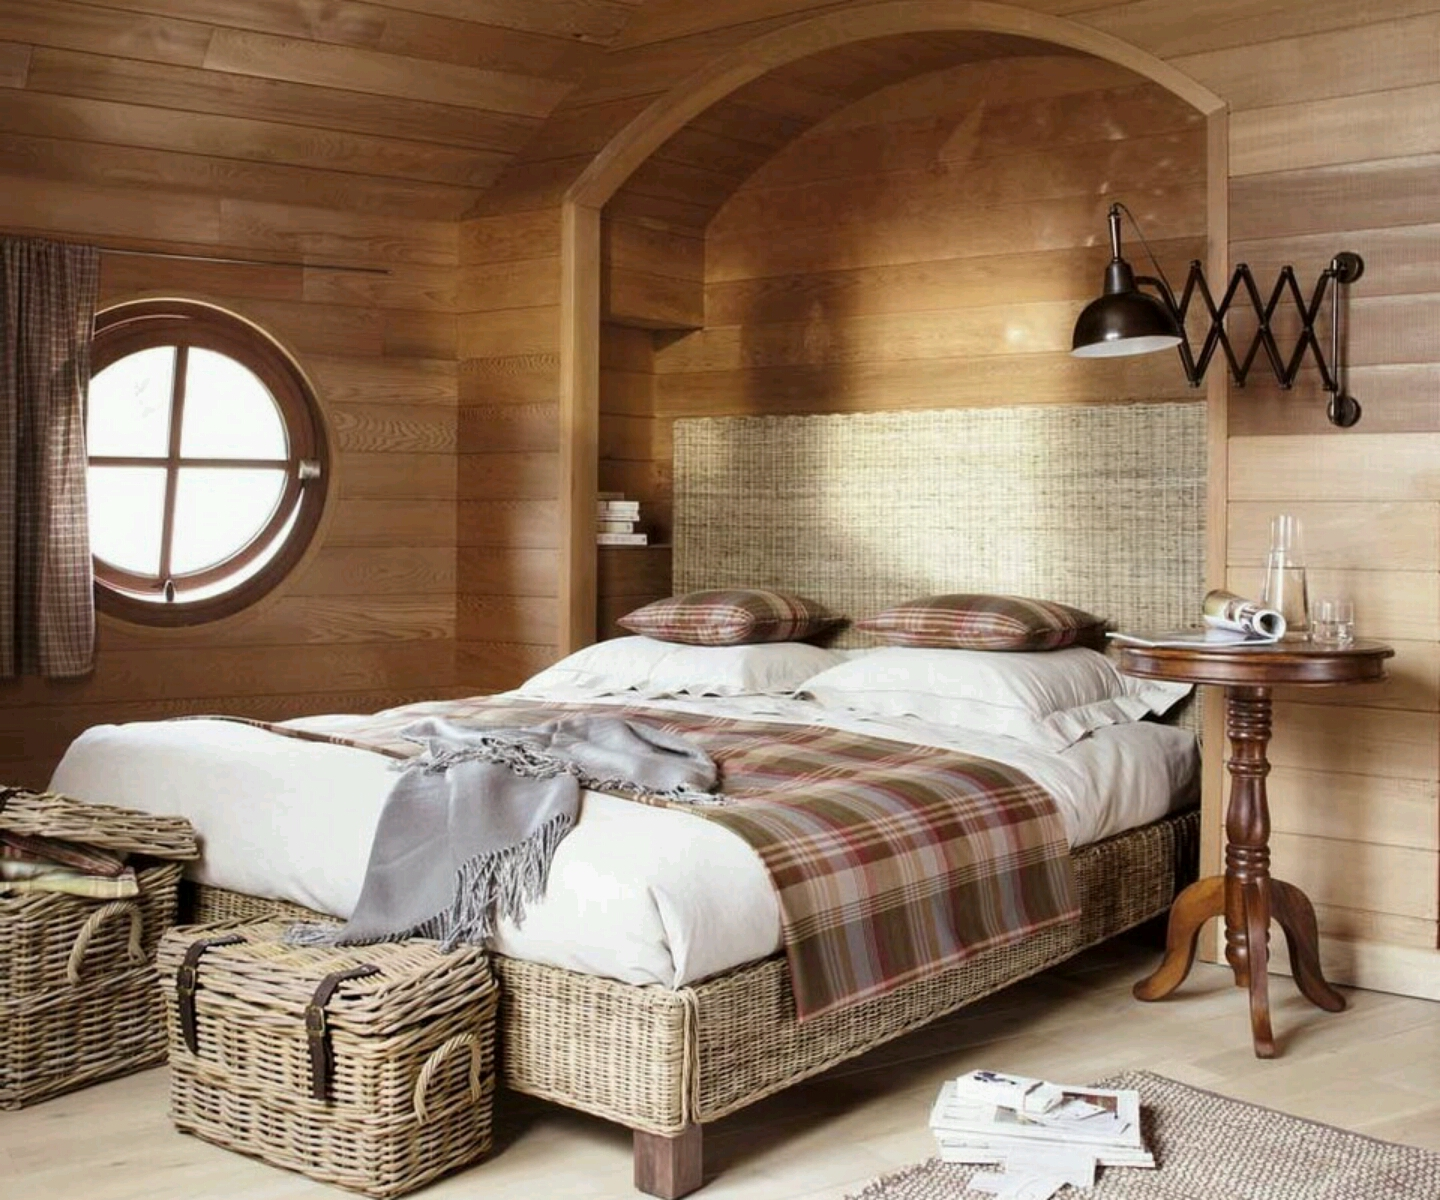 New home designs latest modern beautiful bedrooms for Interior designs for bed rooms